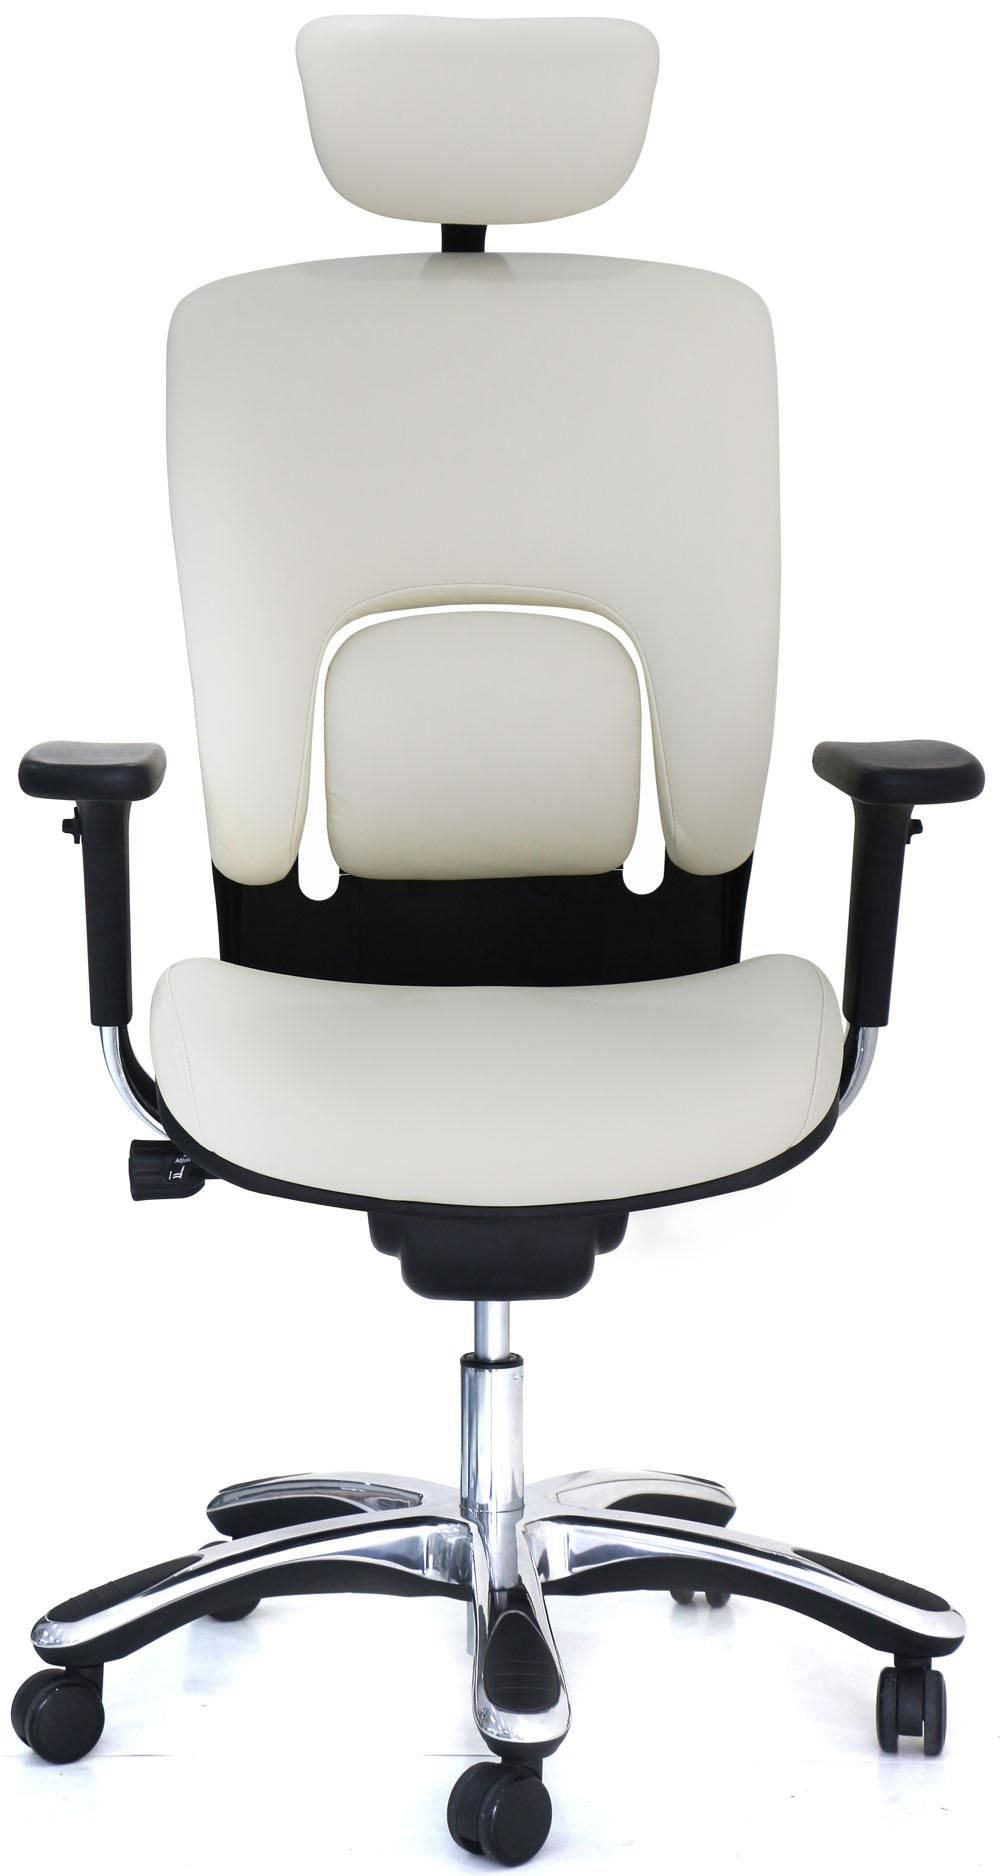 office chair genuine leather white. White Ergolux Genuine Leather High-Back Executive Office Chair Front View A